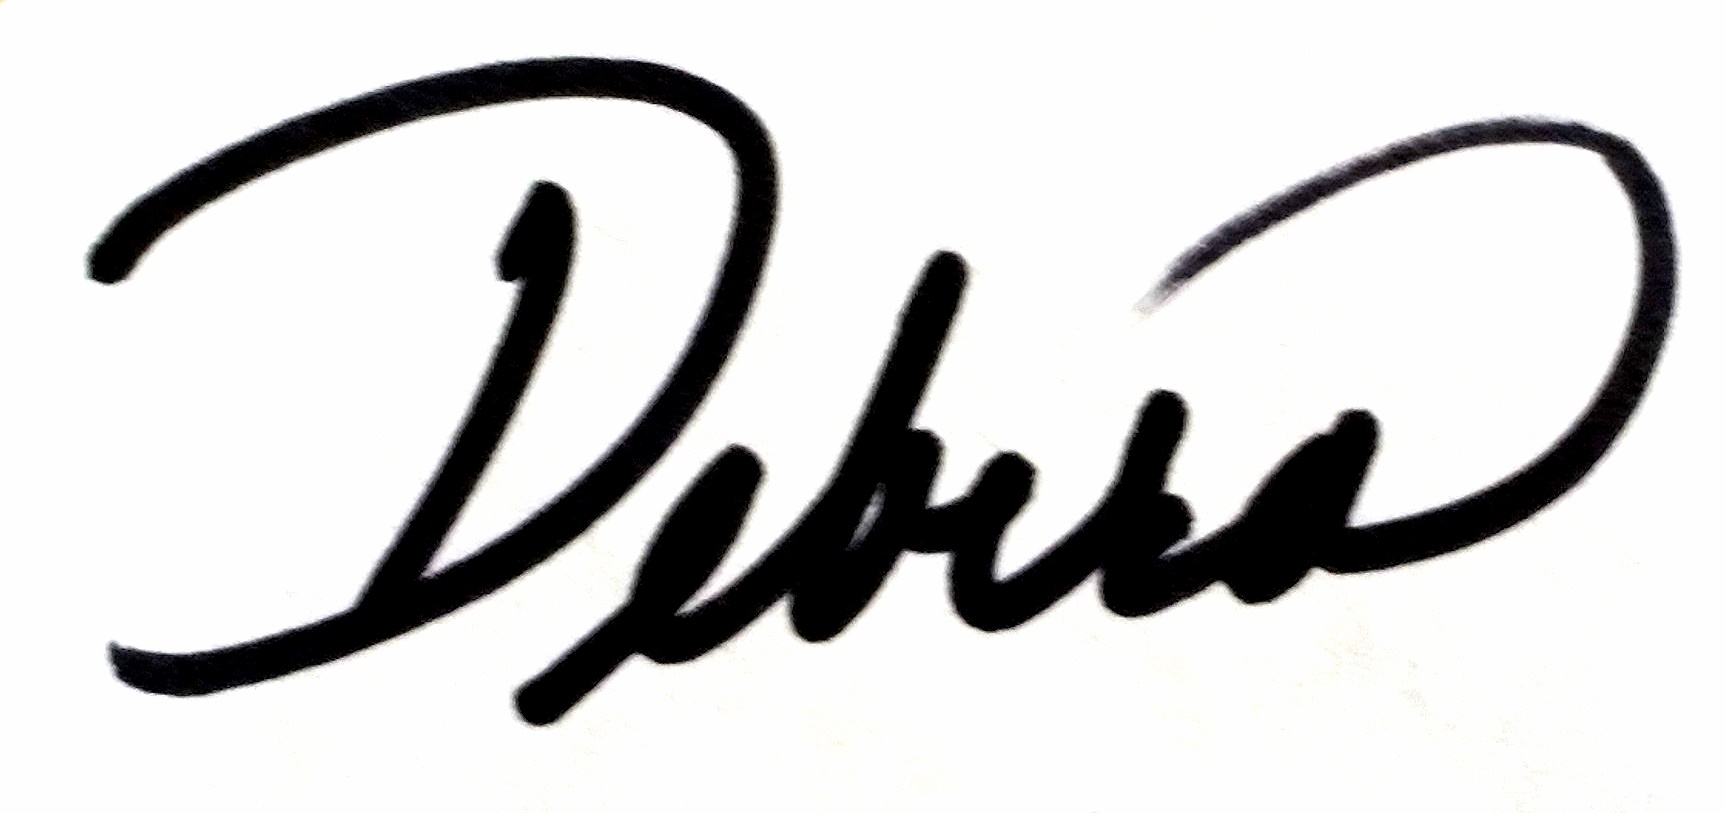 Debra Fishpaw's Signature